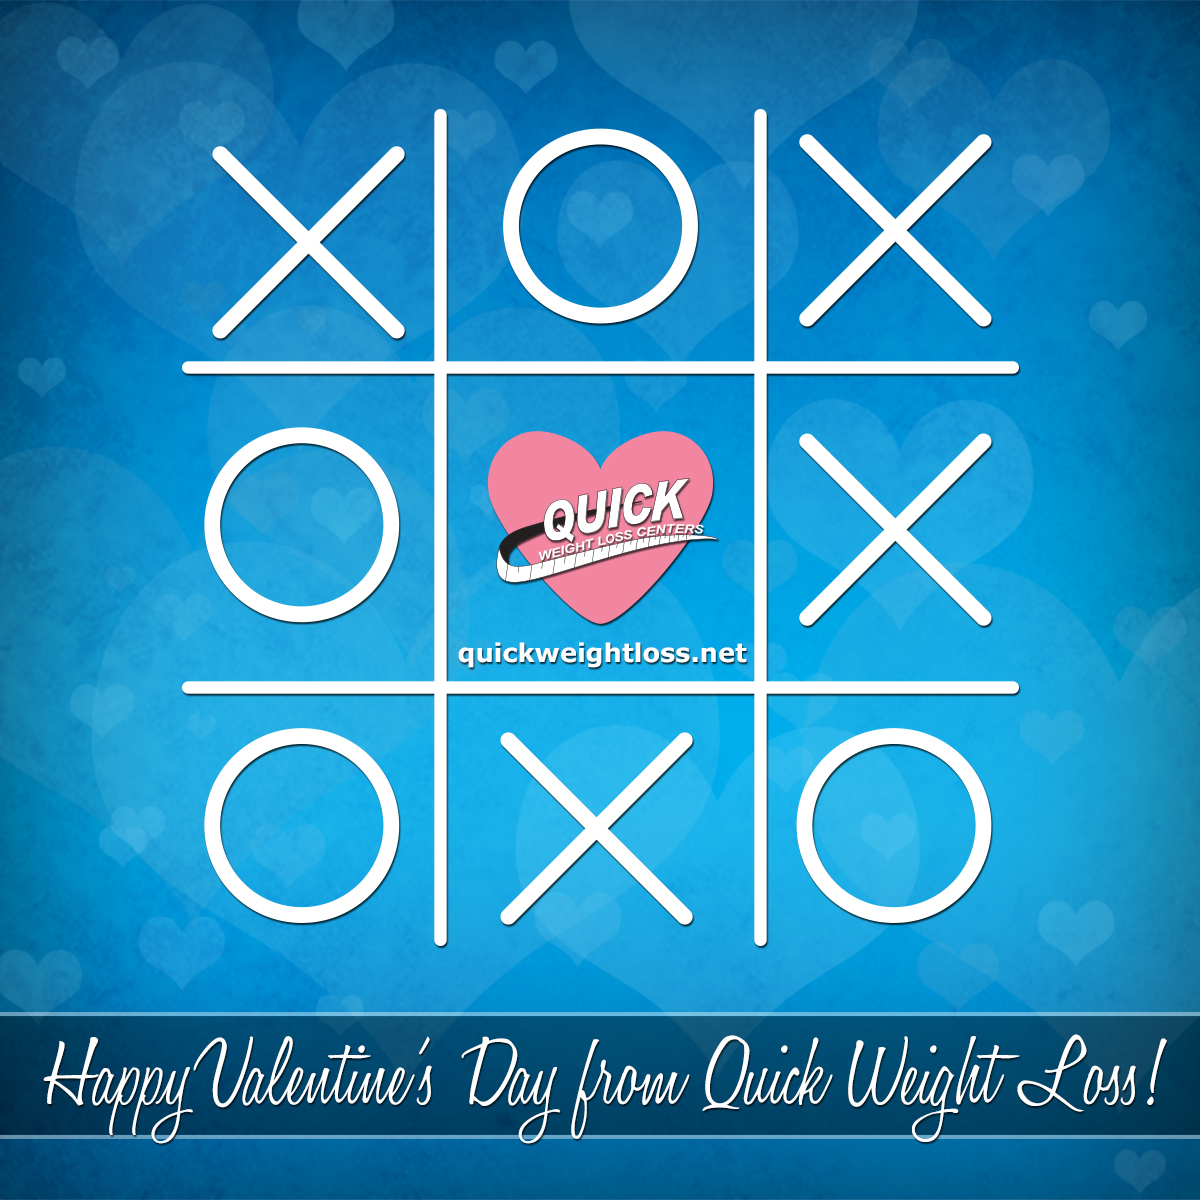 Quick Weight Loss Centers: Happy Valentine's Day from QWLC